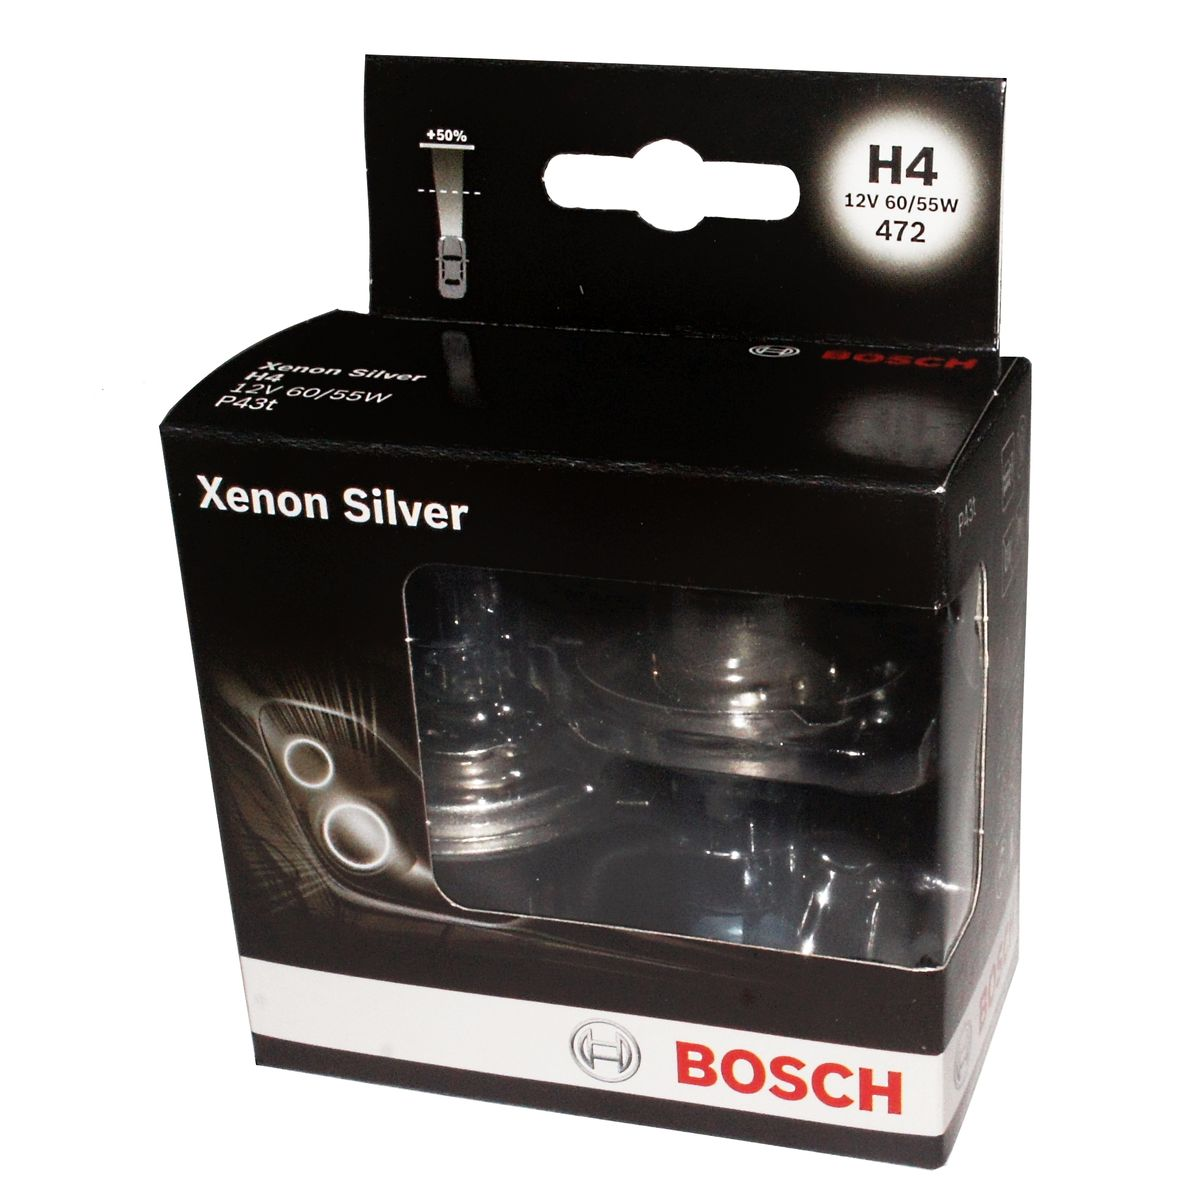 Лампа Bosch H7 Xenon Silver 2шт. 1987301087 full metal mini h4 h7 projector 2 5 inches leader hid bixenon projector lens rhd lhd with gun shrouds for auto headlight